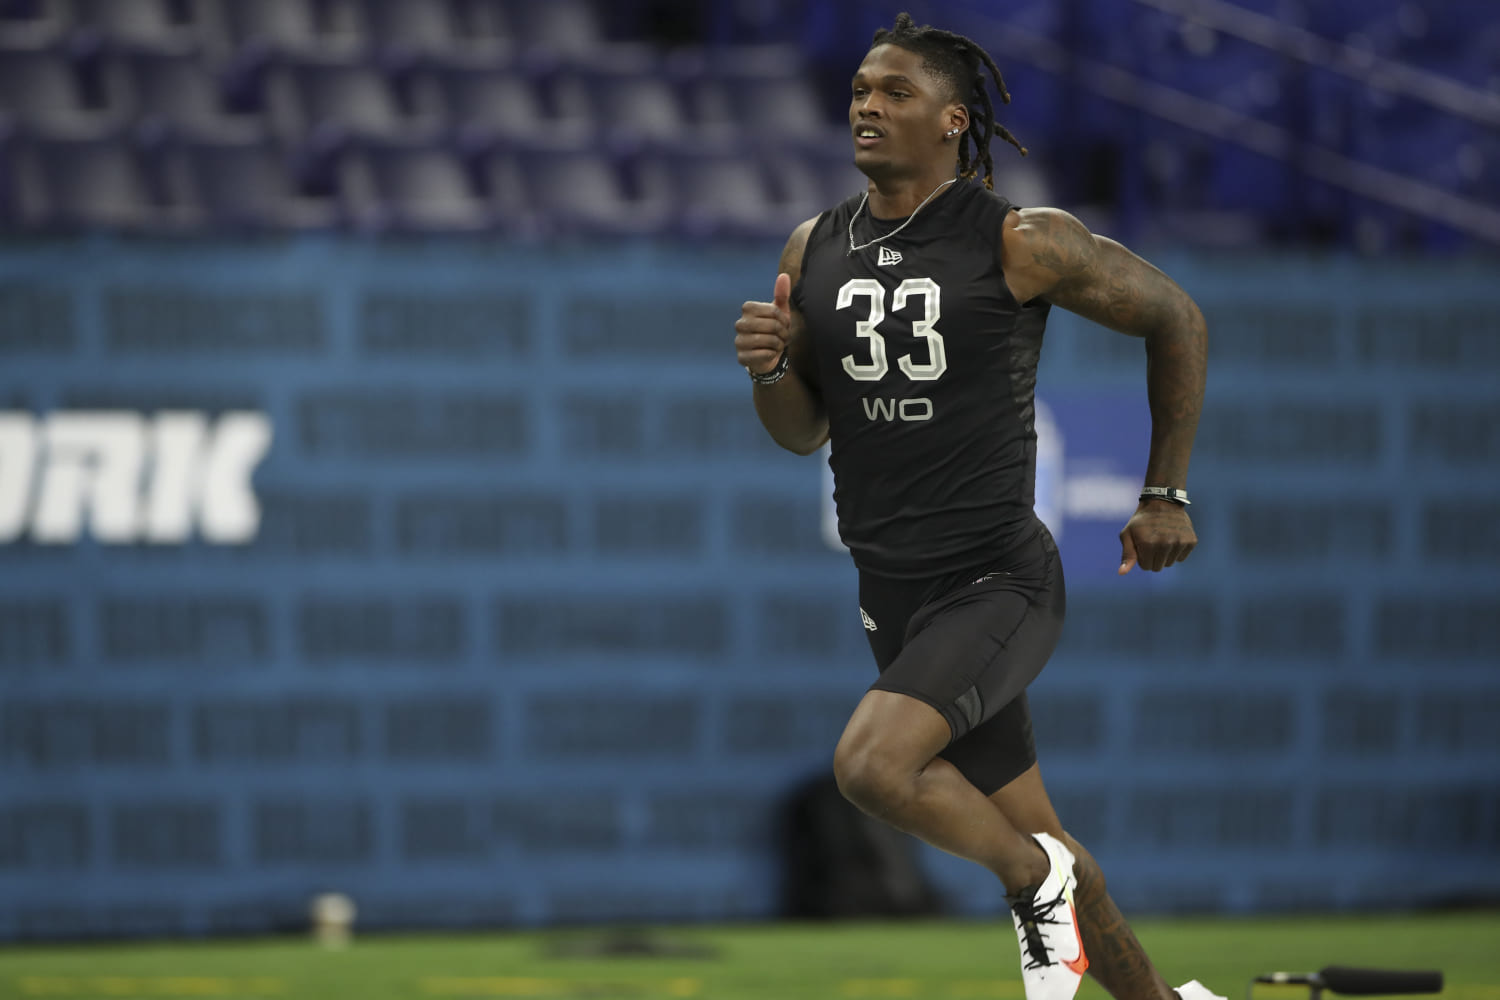 Packer's Free Agent and Combine Chatter